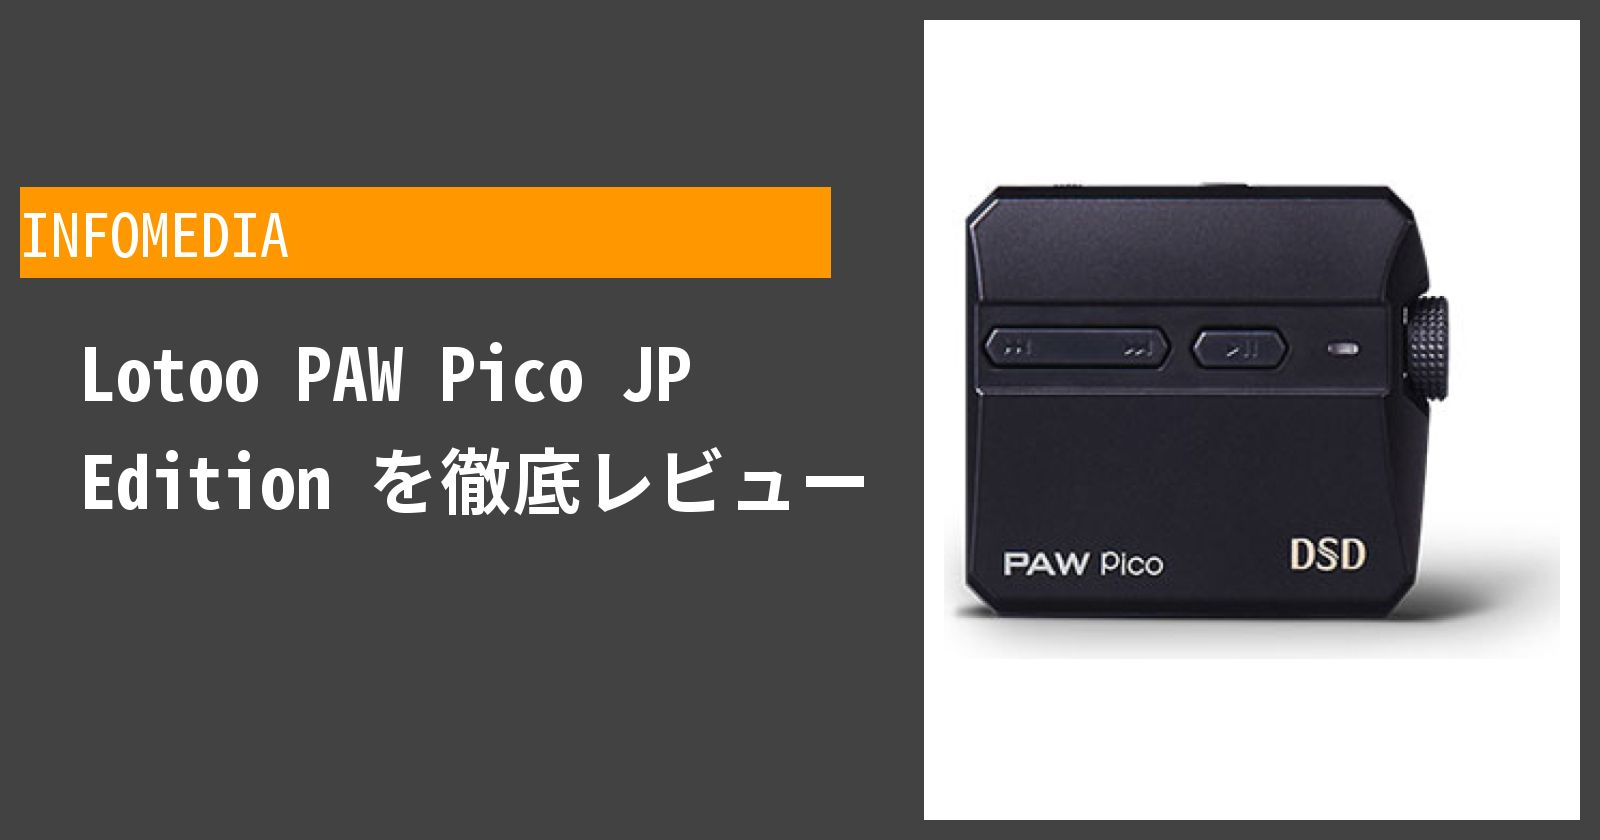 Lotoo PAW Pico JP Editionを徹底評価